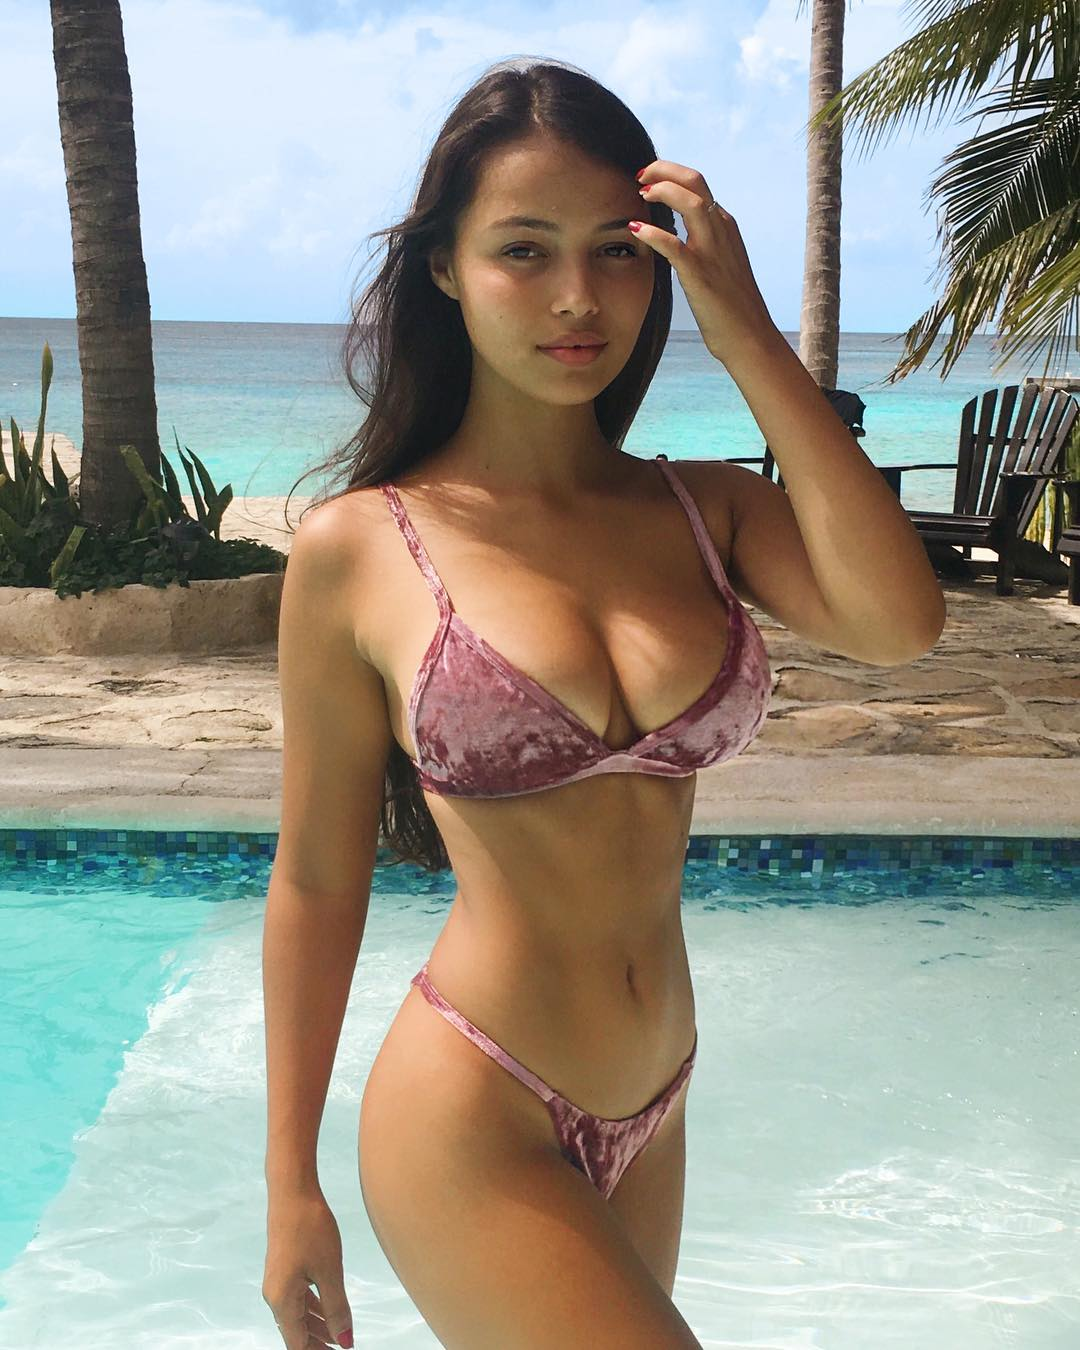 quinter mature women personals Quinter's best 100% free milfs dating site meet thousands of single milfs in quinter with mingle2's free personal ads and chat rooms our network of milfs women in quinter is the perfect place to make friends or find a milf girlfriend in quinter.